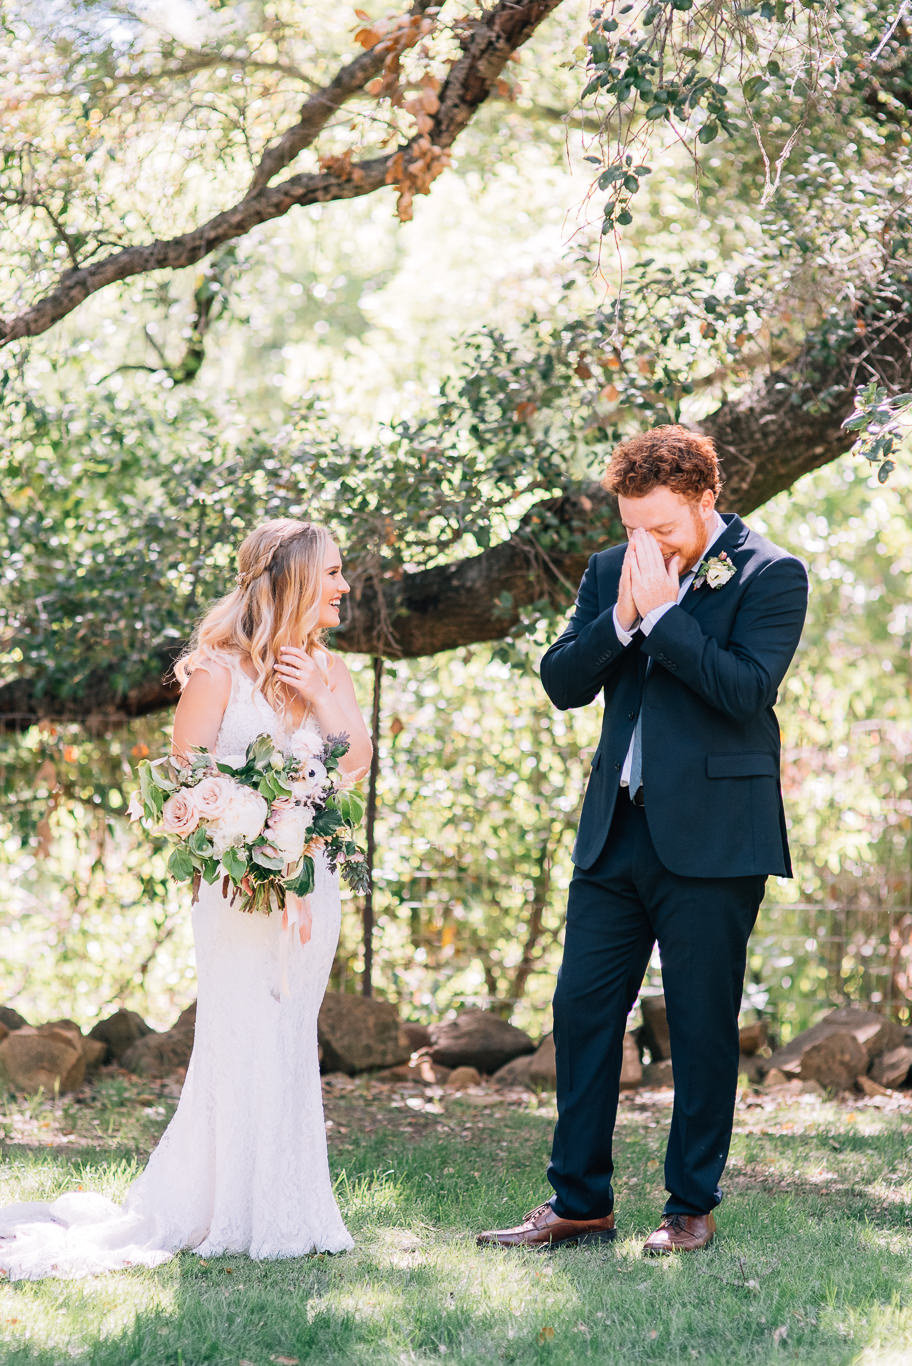 San Luis Obispo wedding photo by Amber McGaughey011